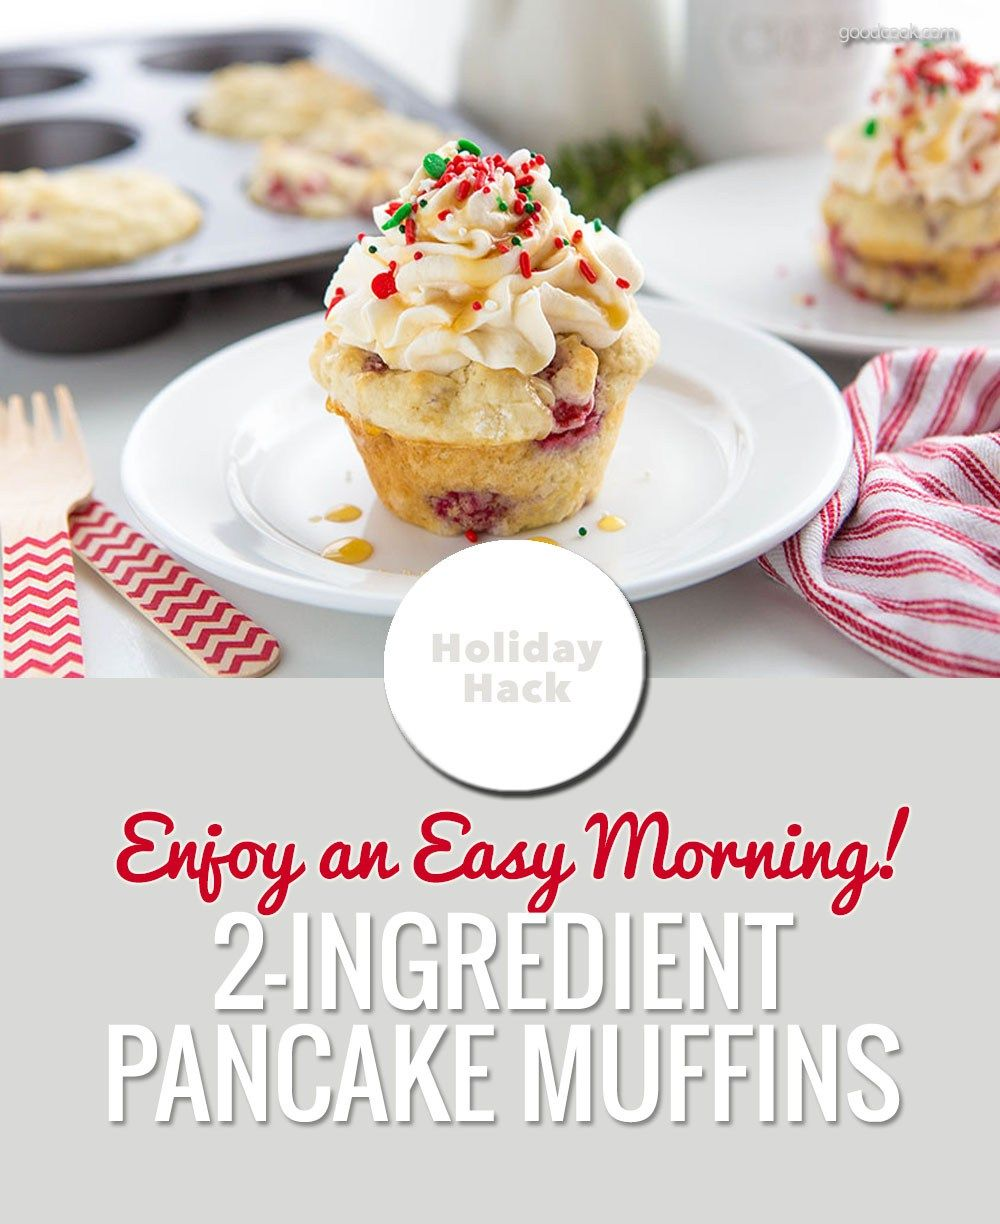 HOLIDAY HACK: How to Make Christmas Morning Muffins with Just 2-Ingredients!